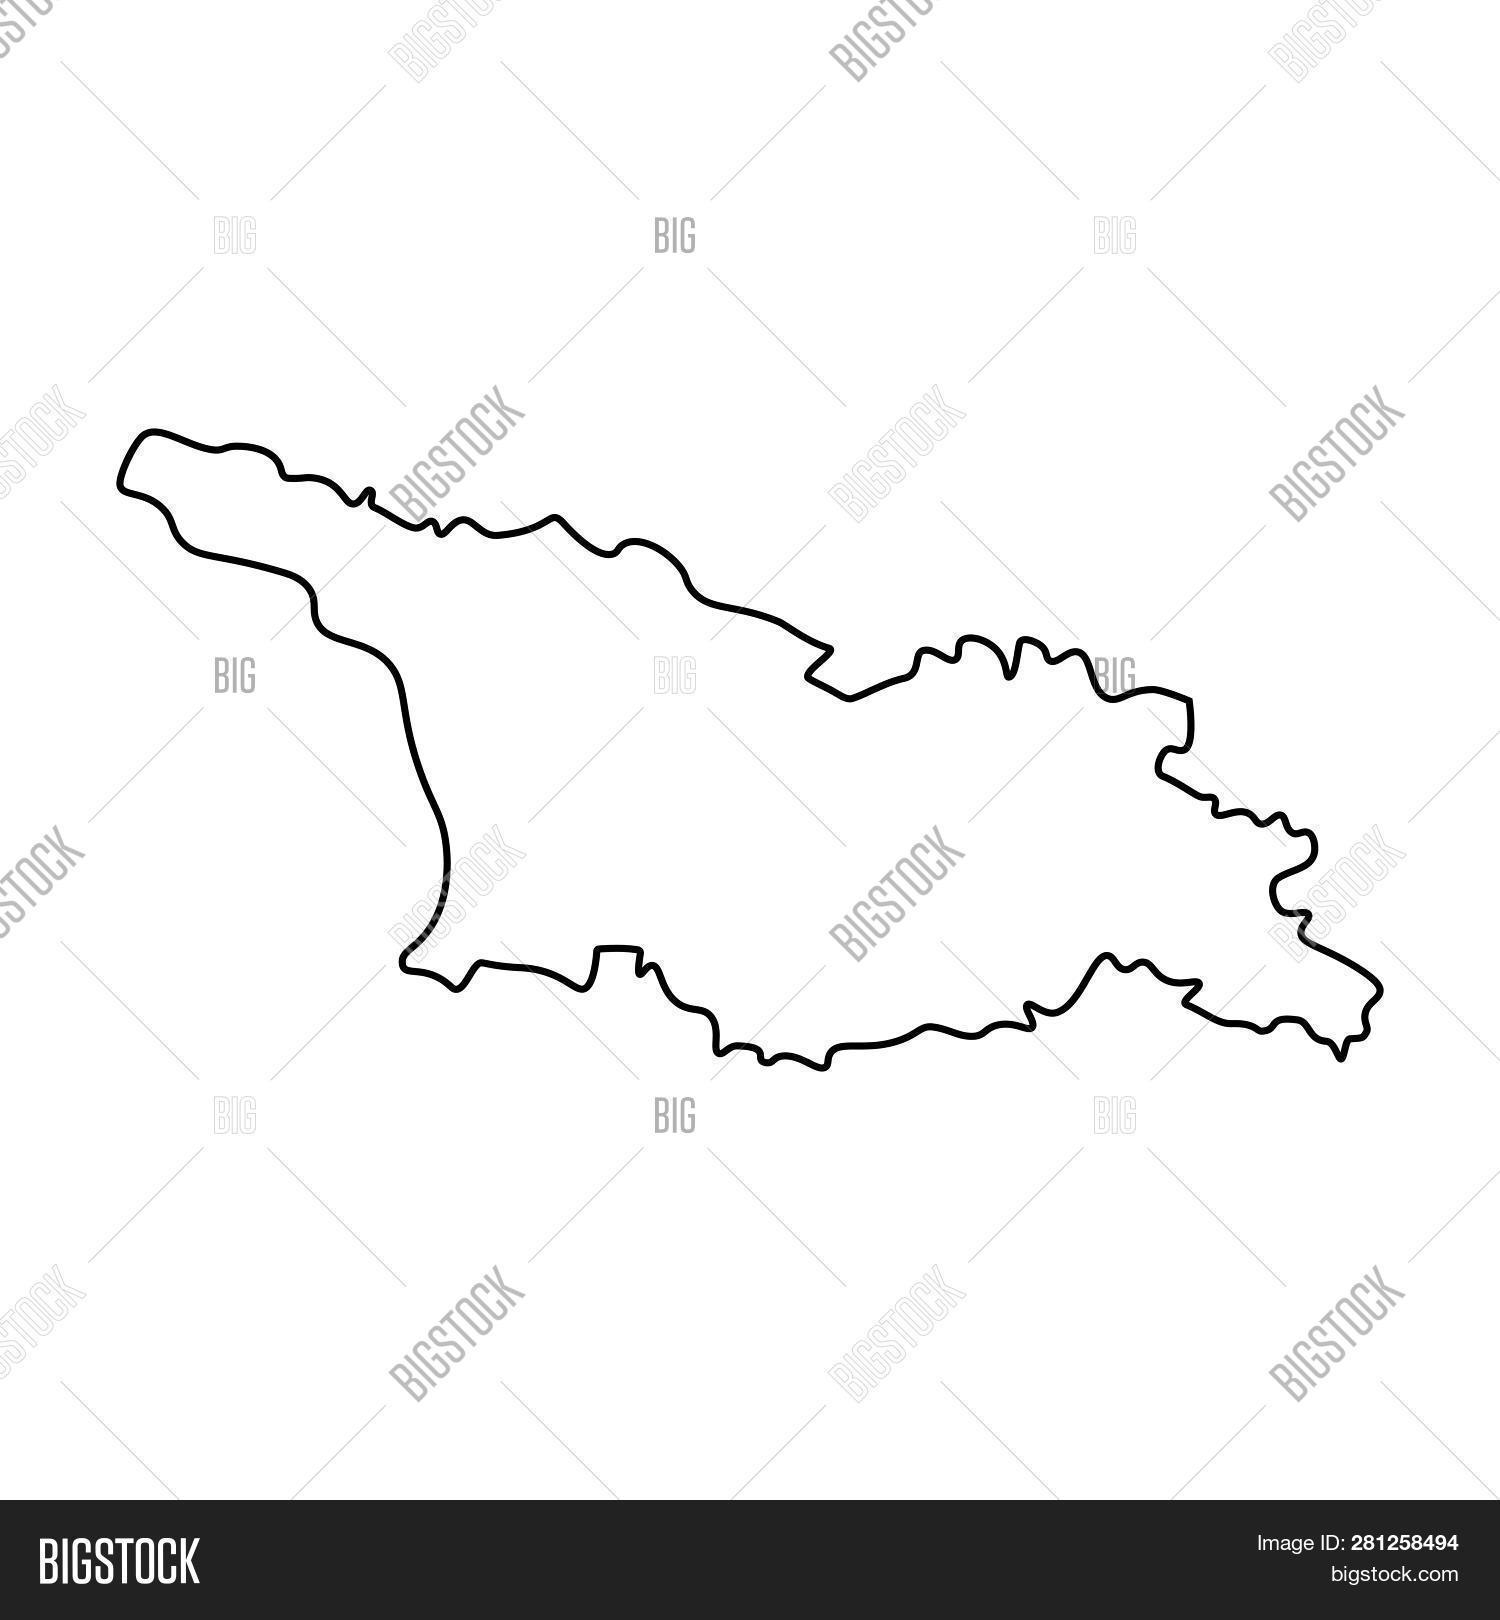 Outline Of Georgia Map.Map Georgia Outline Image Photo Free Trial Bigstock